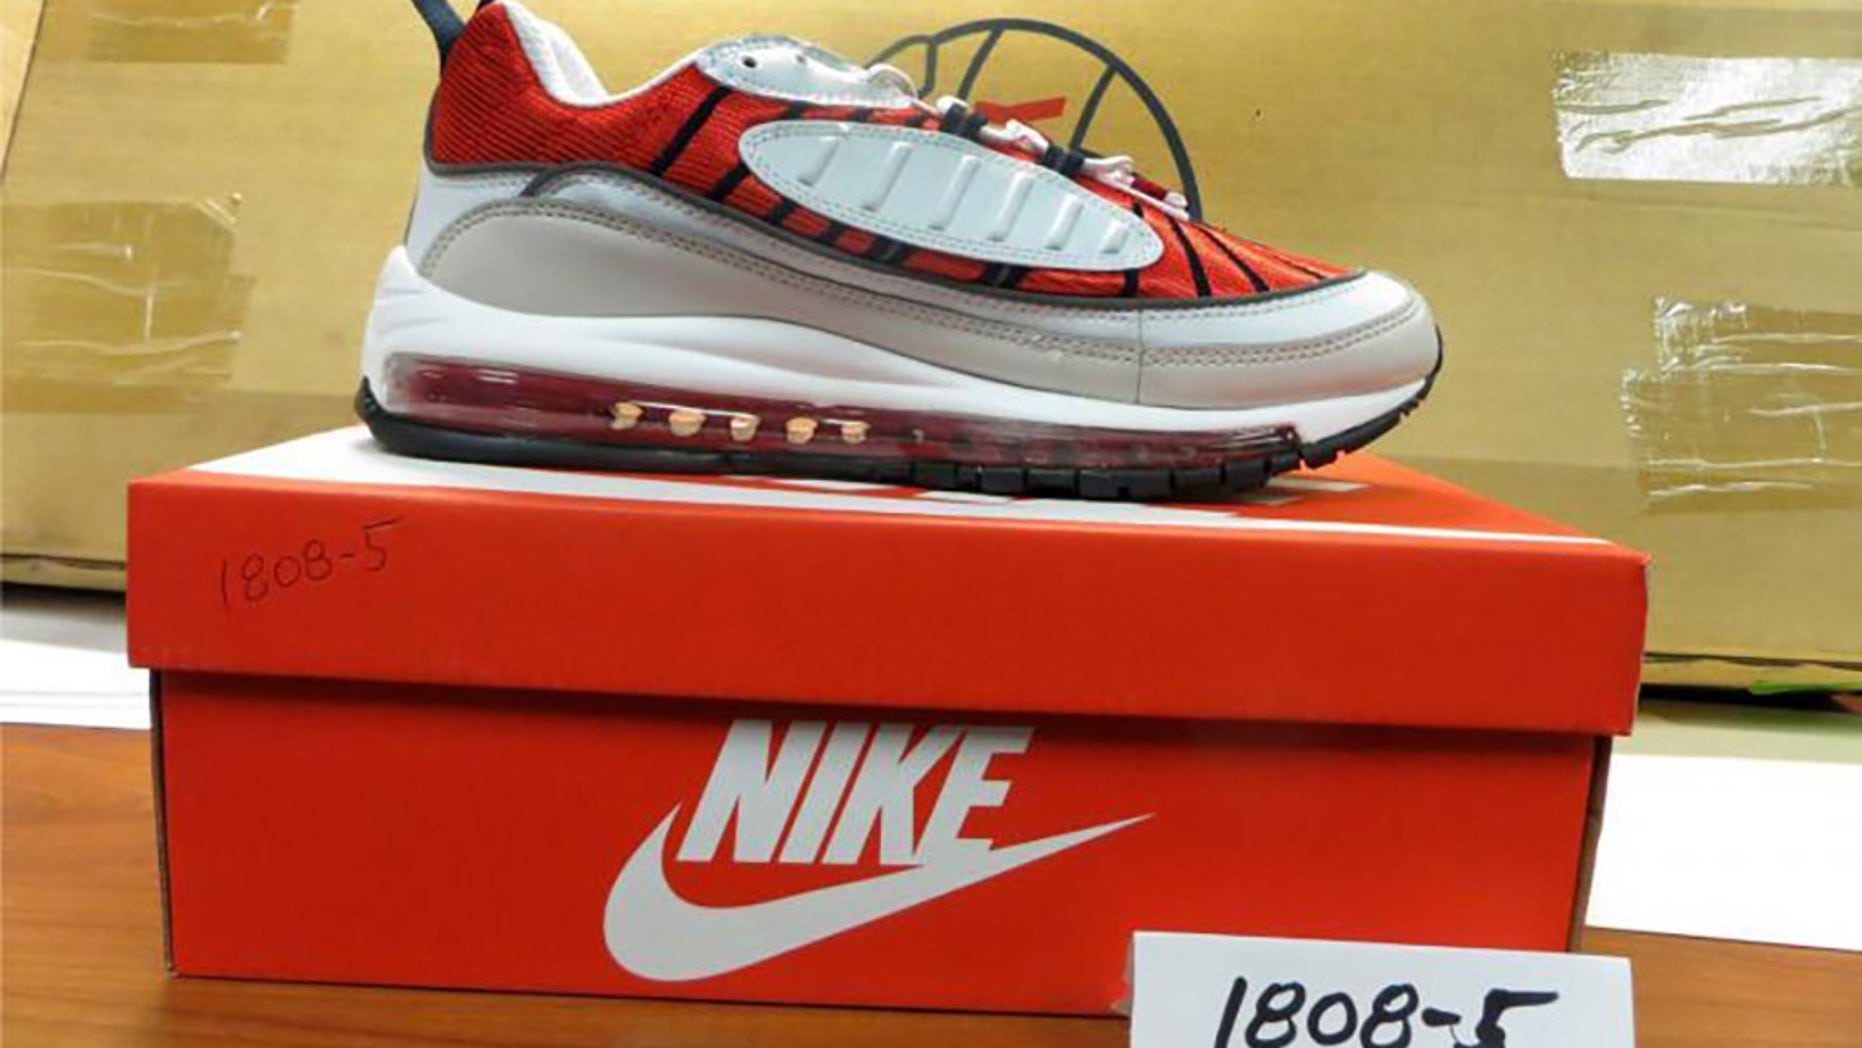 More than 9,000 pairs of imitation Nike sneakers, valued at nearly $1.7 million, were seized by Customs and Border Protection officers at the Port of New York and Newark, N.J., the agency announced Tuesday.